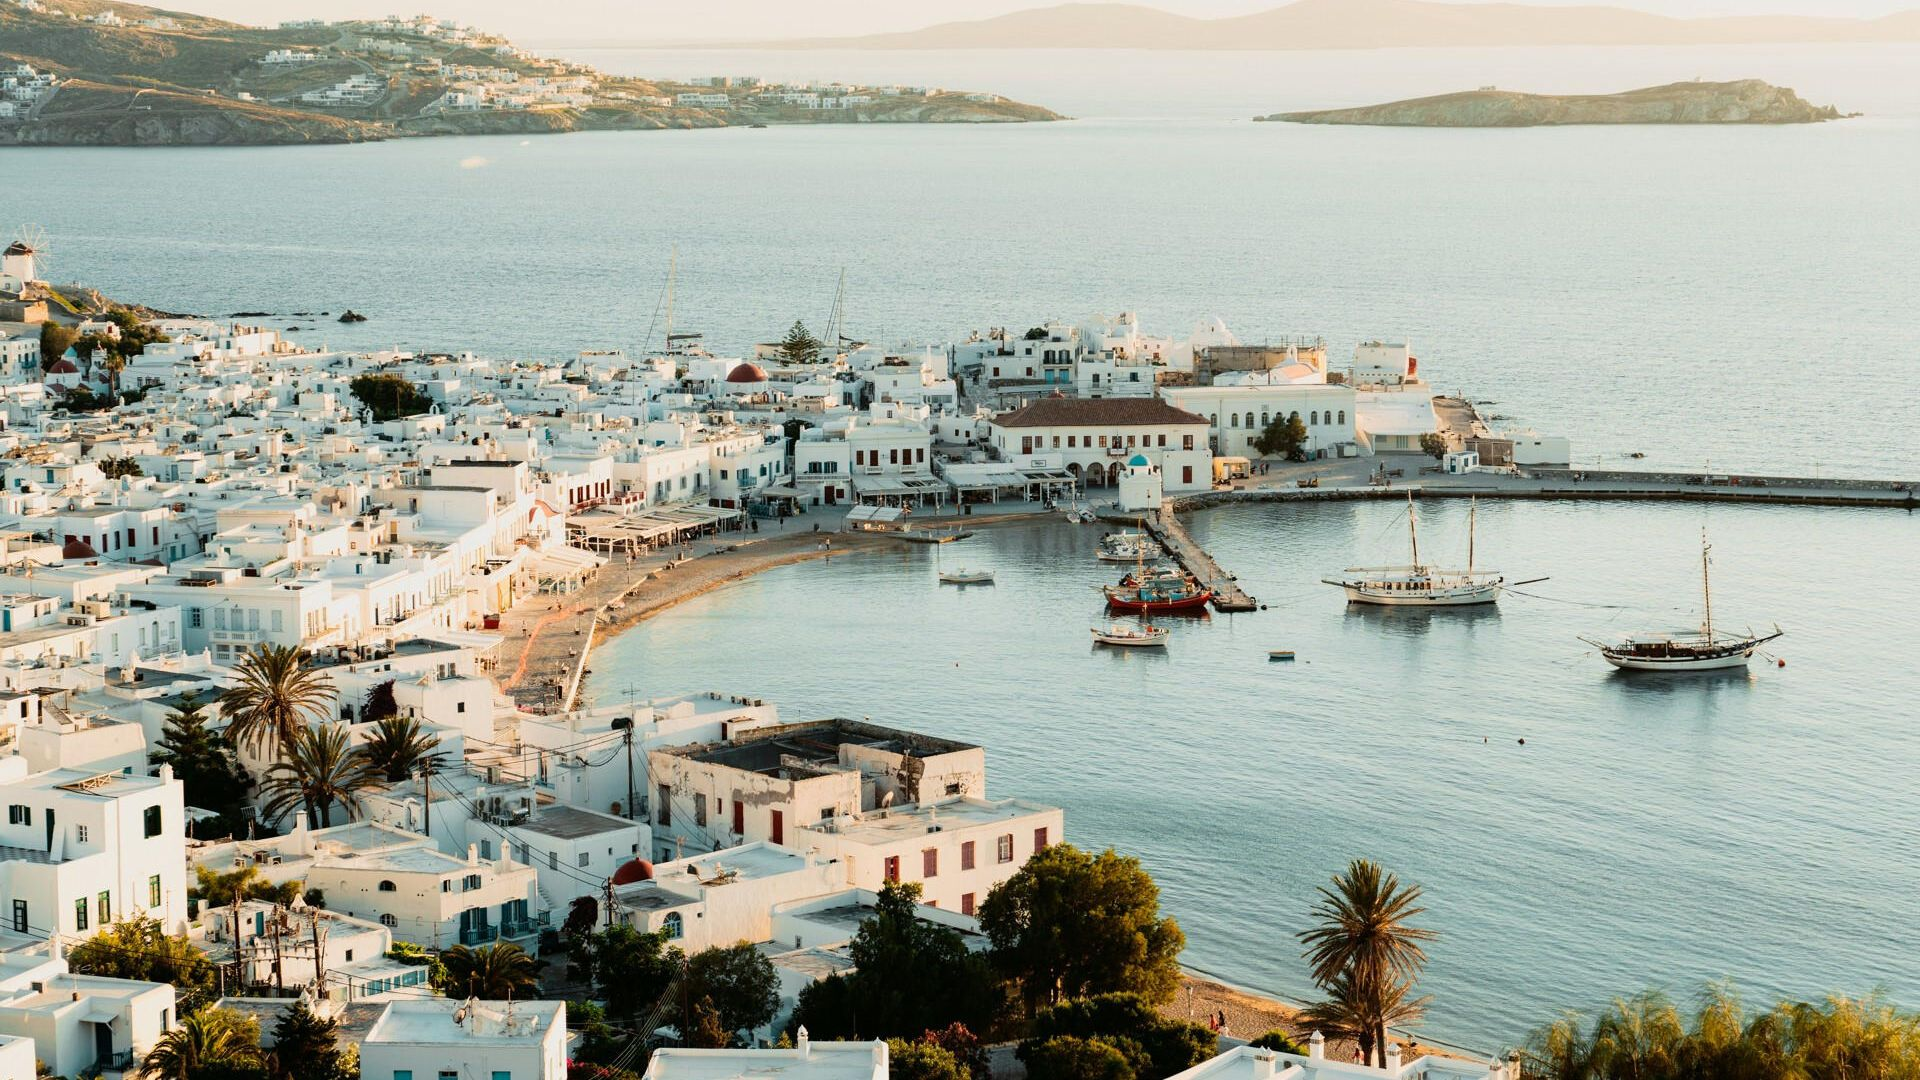 Instagrammable beauty of Mykonos' Hora from above